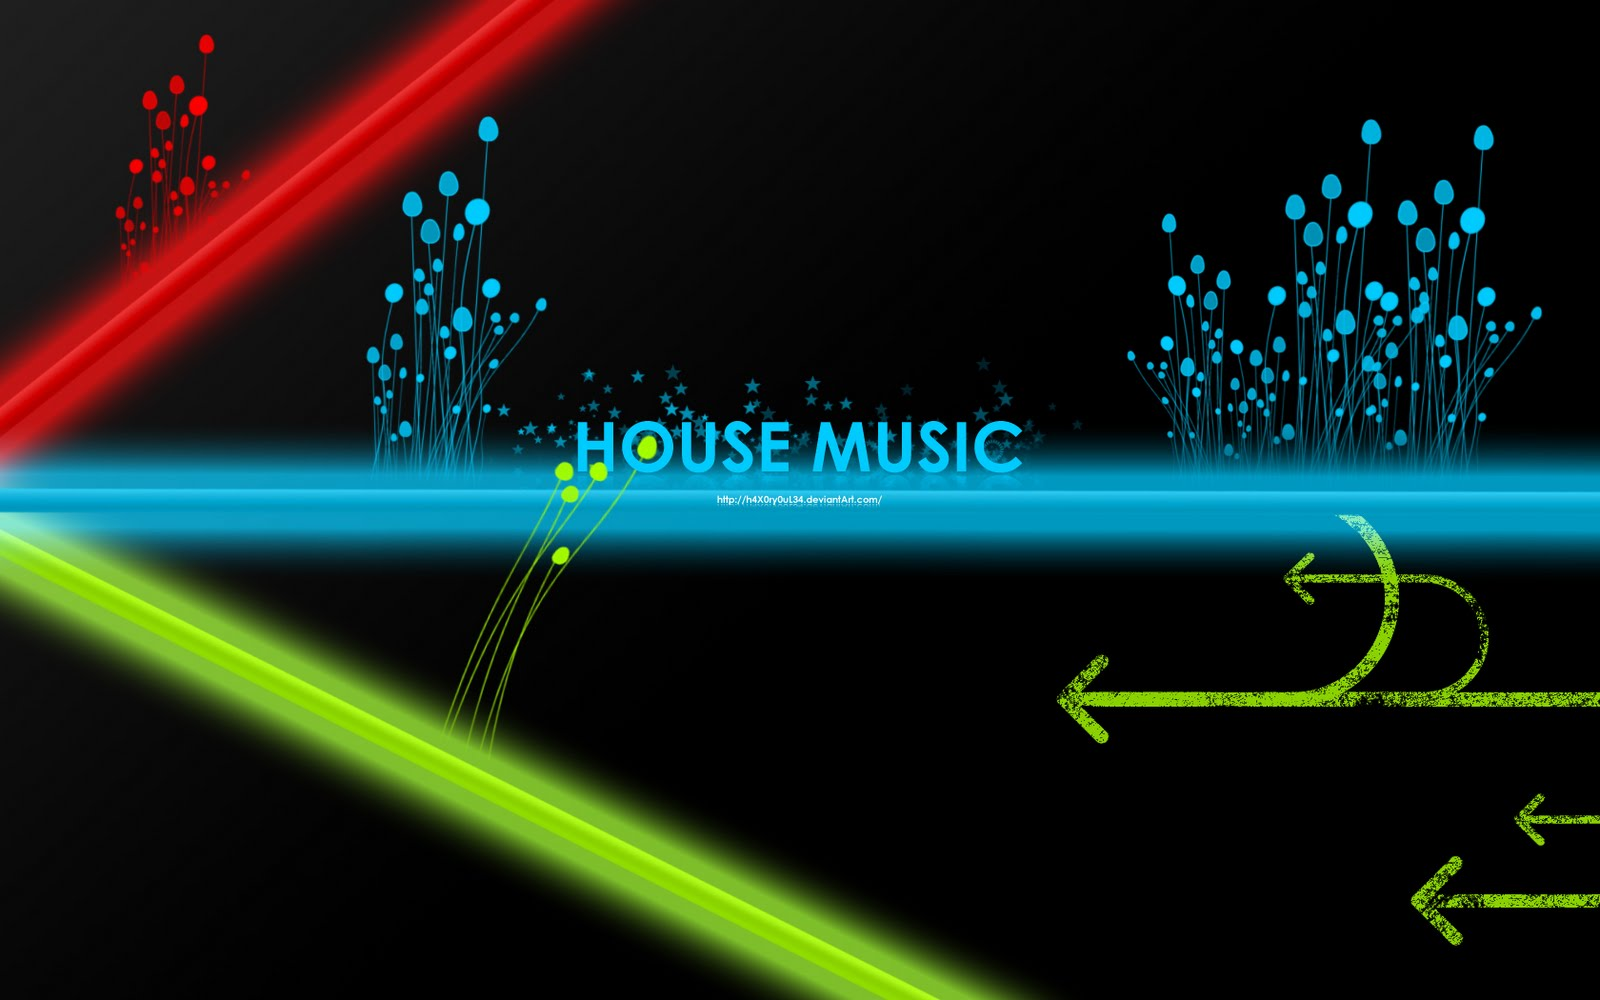 Swedish House Mafia Hd Wallpapers Pic New Posts Wallpaper In House